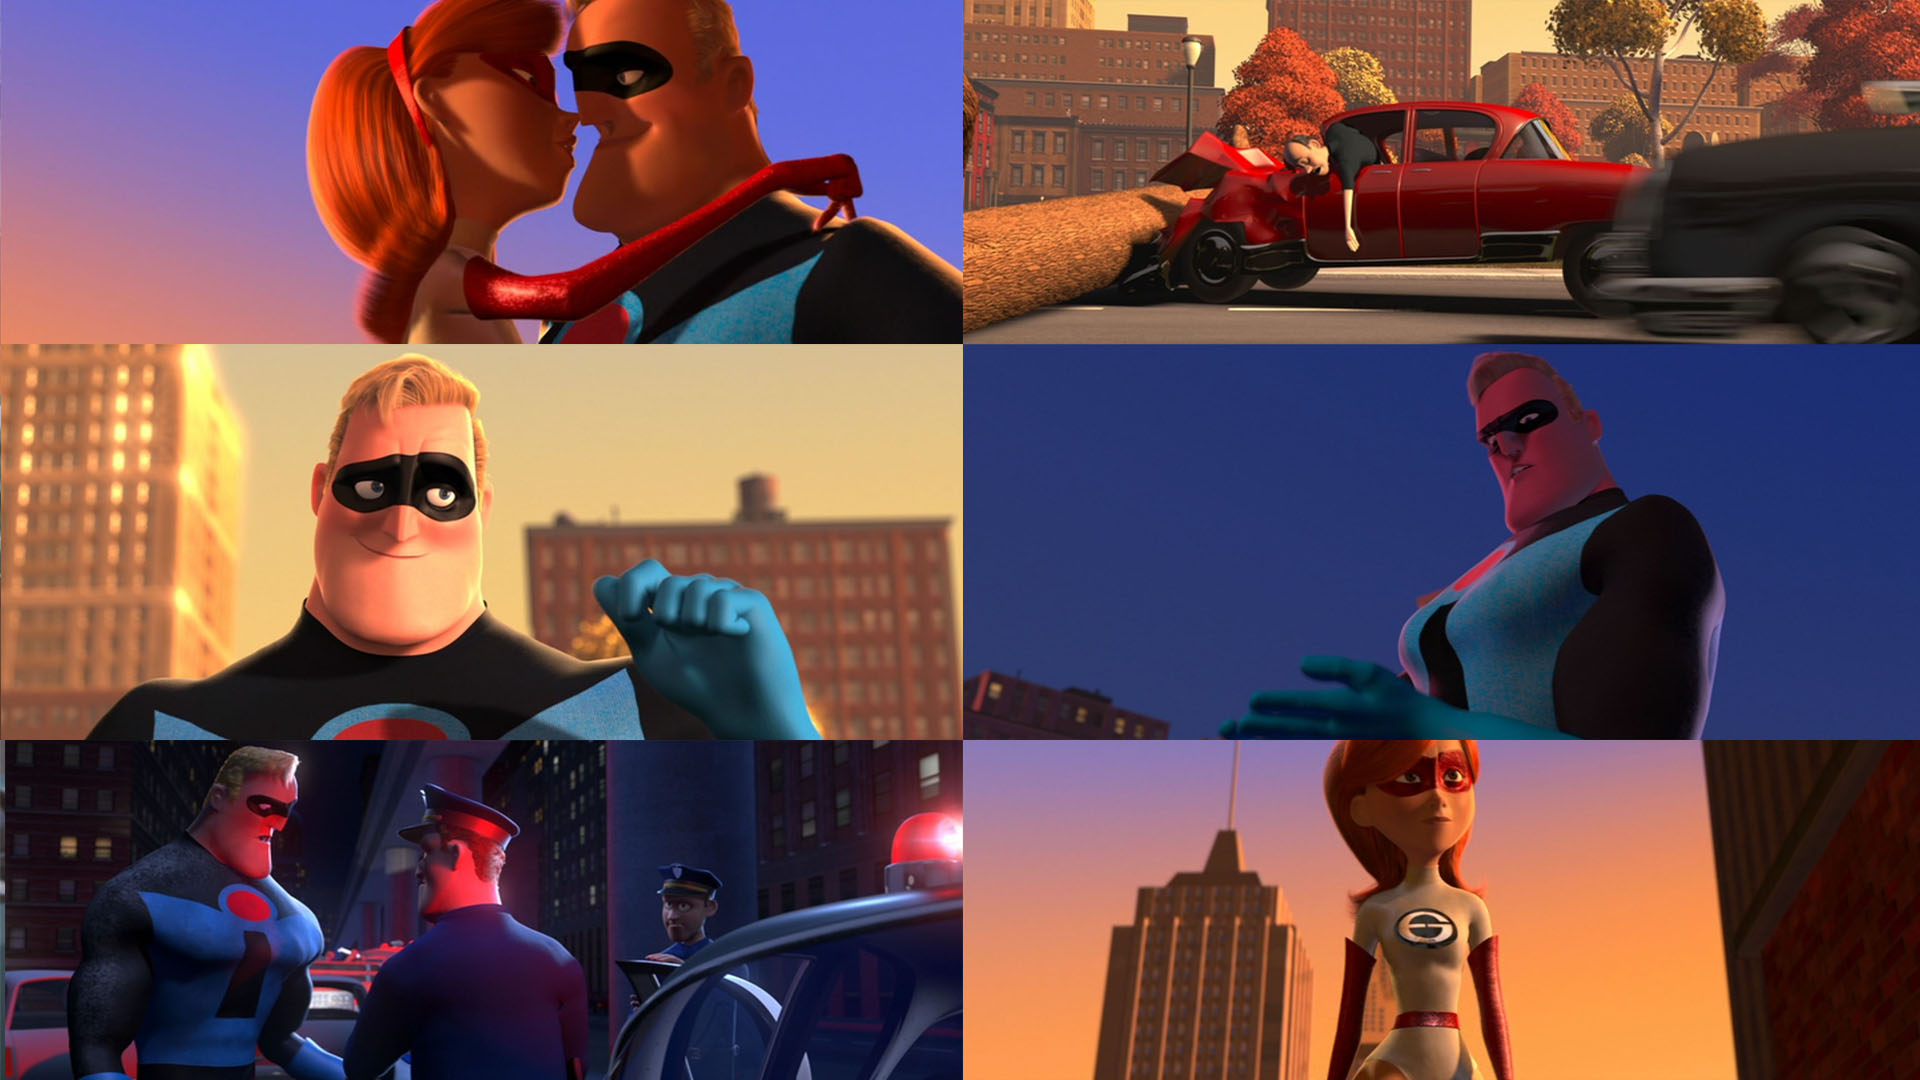 The incredibles porn games